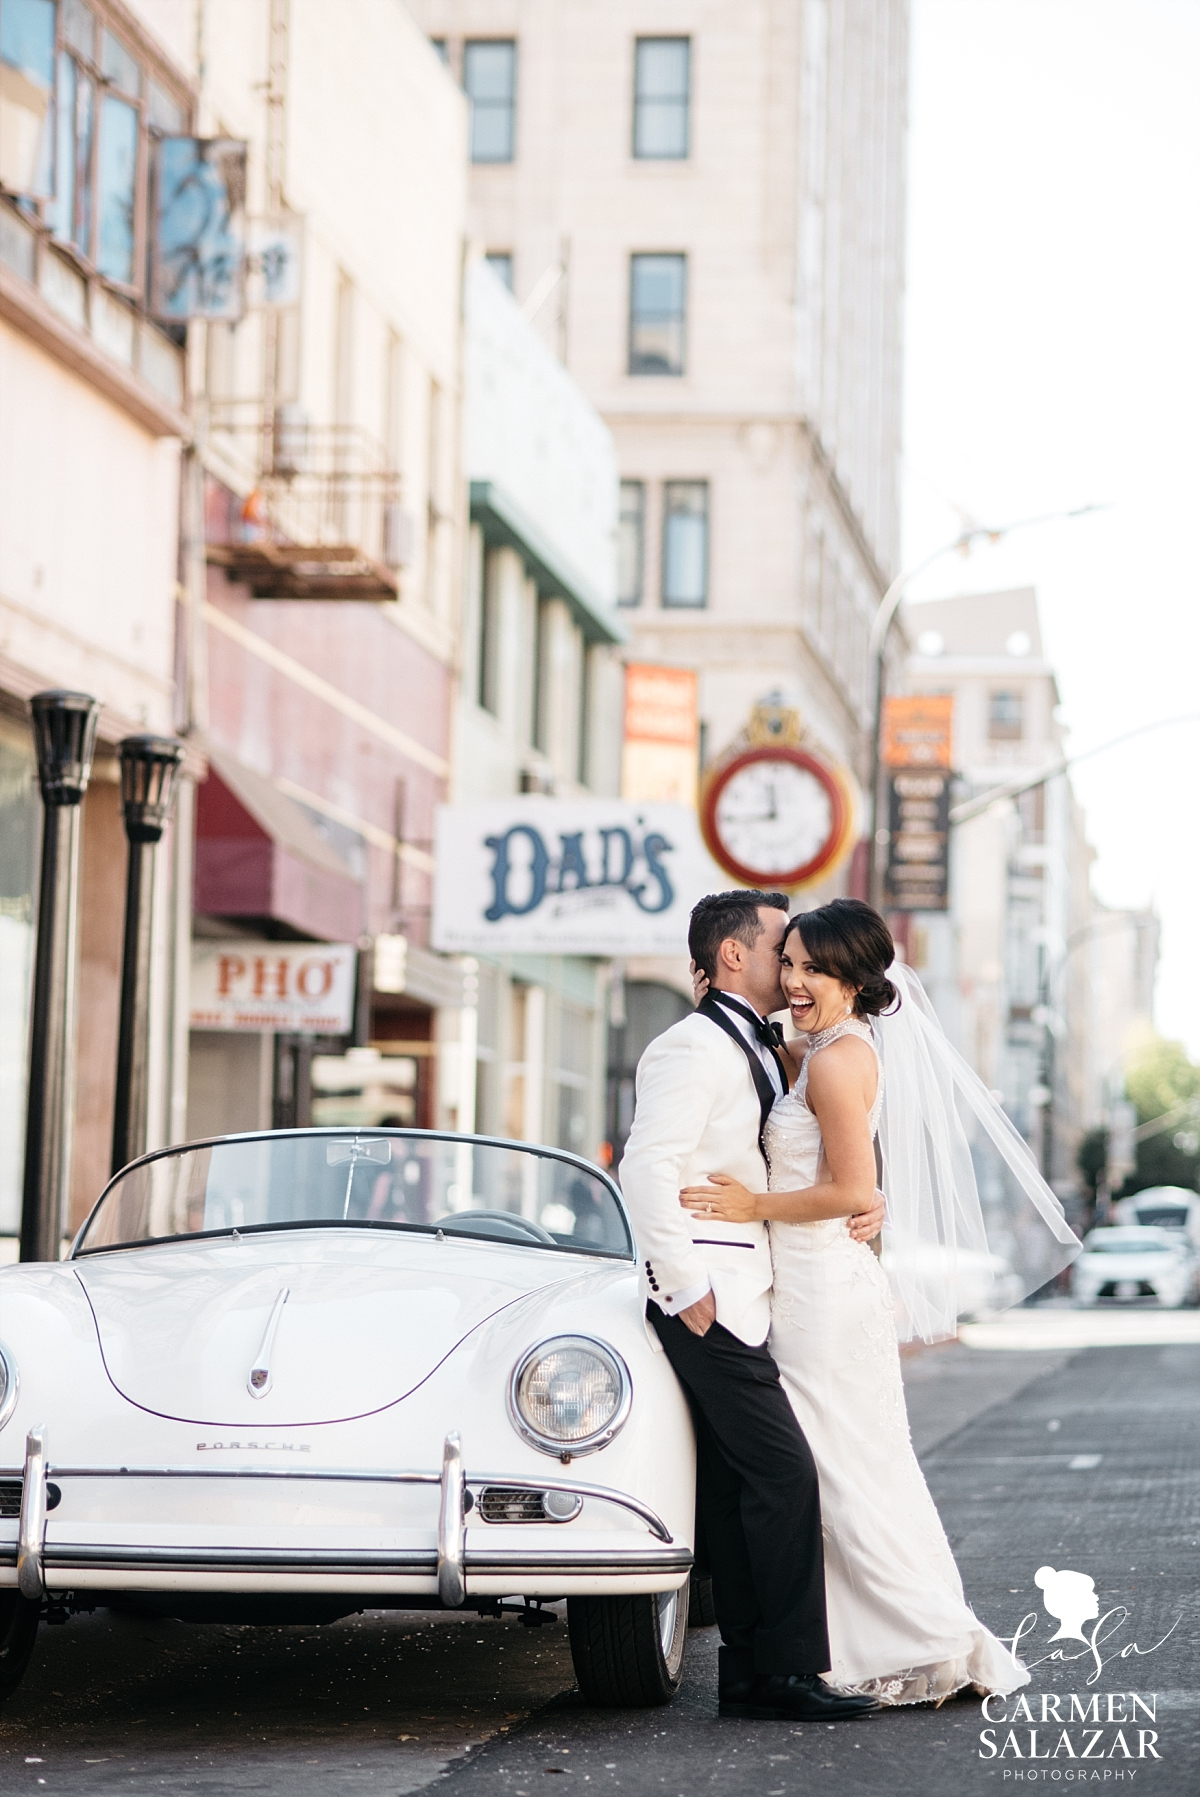 Fun urban bride and groom photography with vintage car - Carmen Salazar